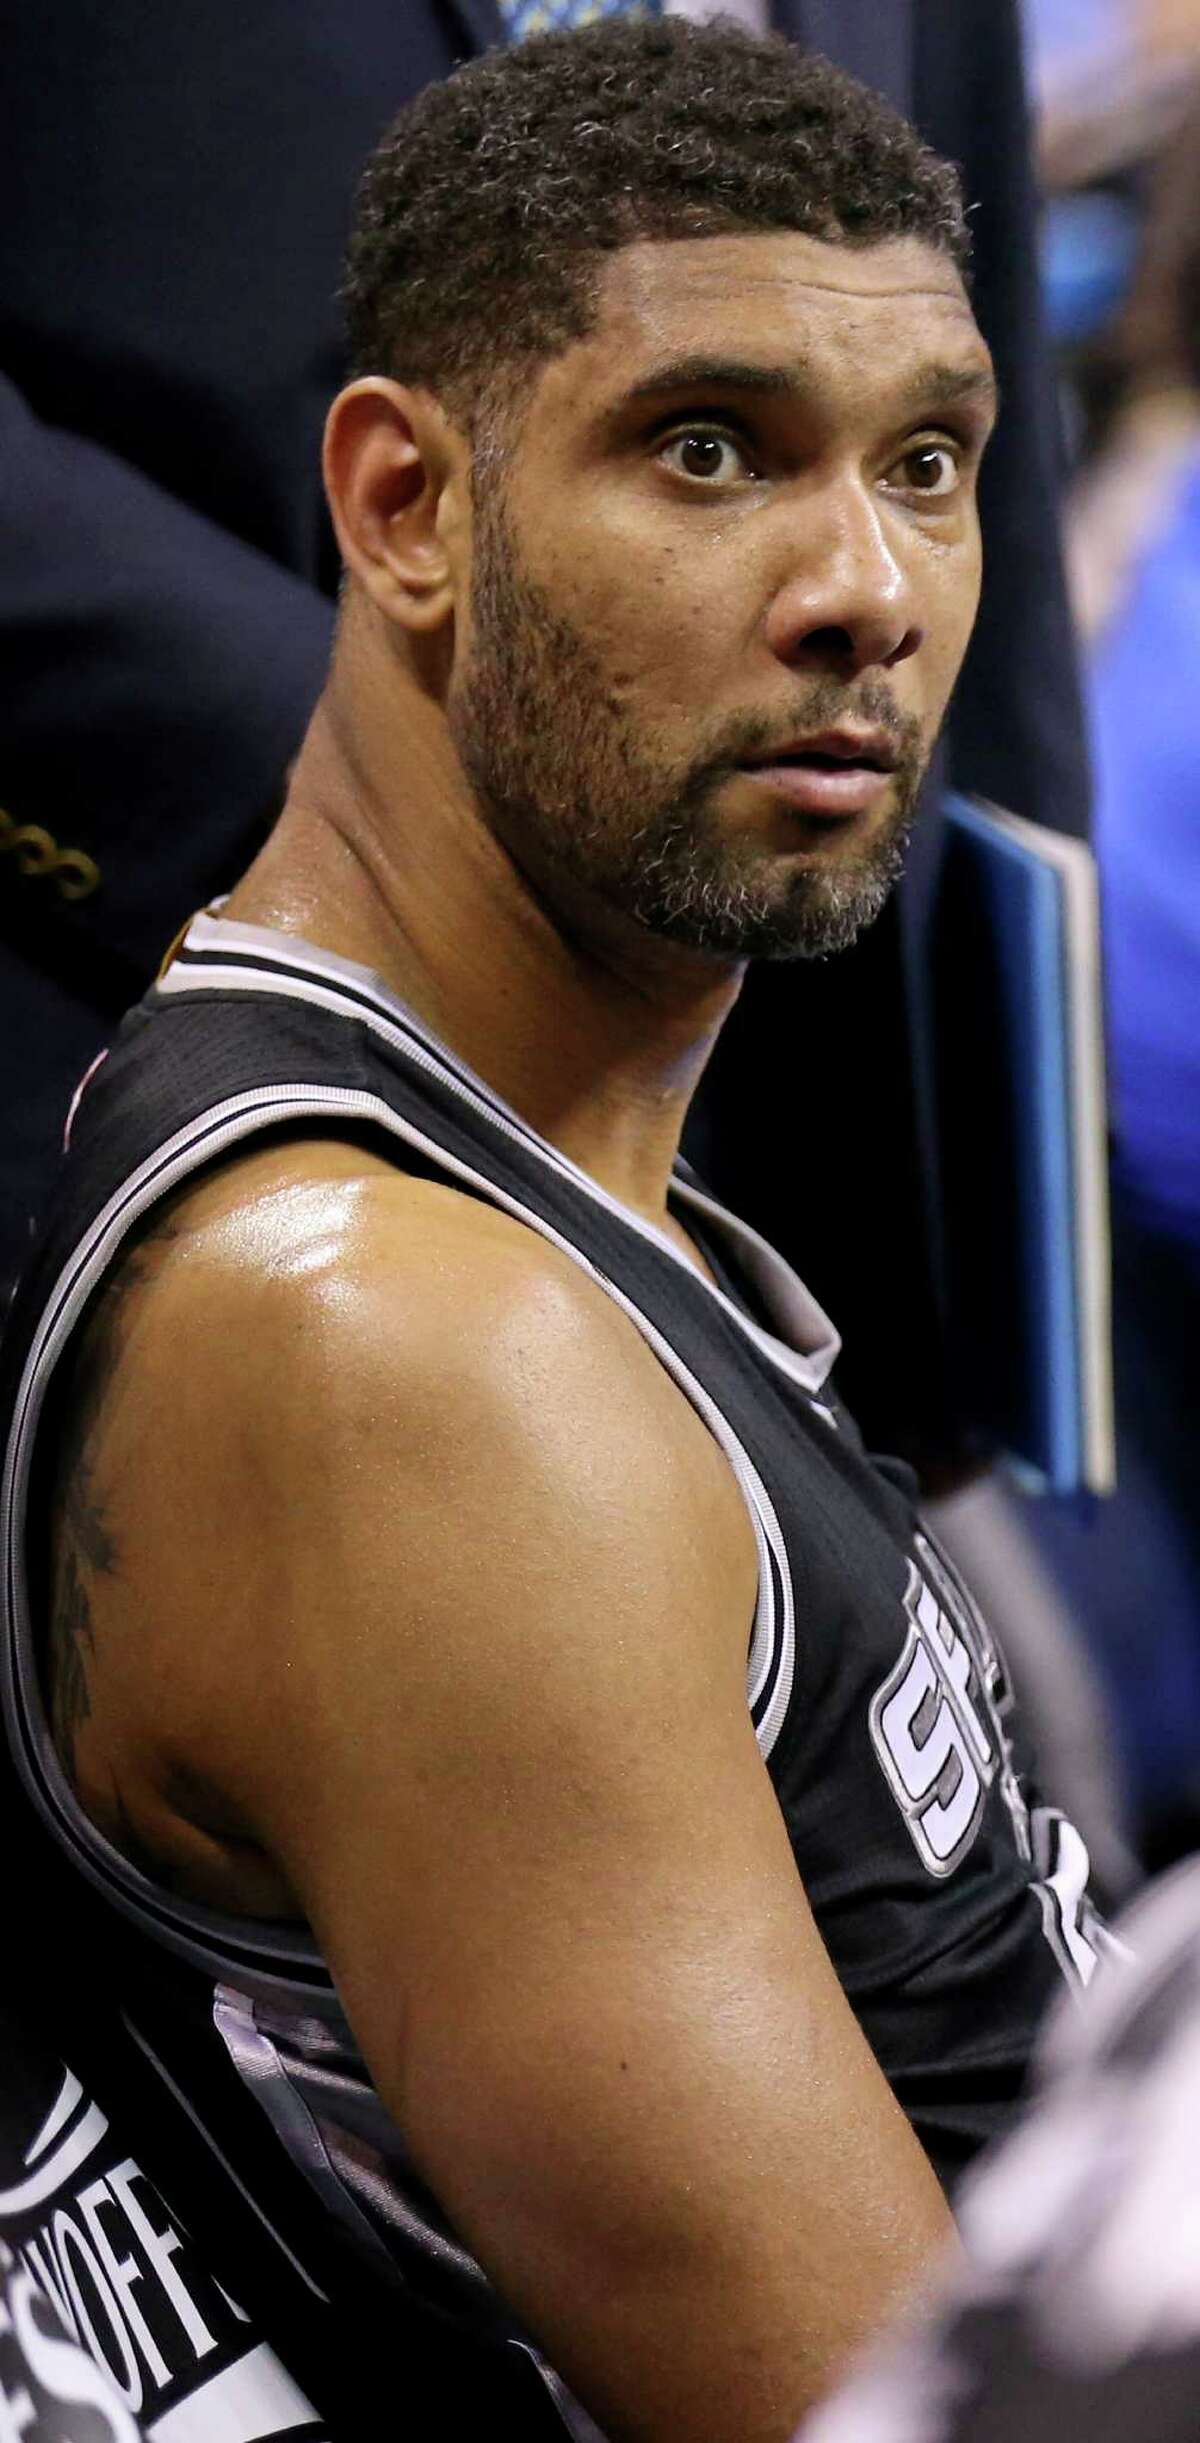 Spurs' Tim Duncan sits on the bench during second half action of Game 6 in the Western Conference semifinals against the Oklahoma City Thunder on May 12, 2016 at Chesapeake Energy Arena.